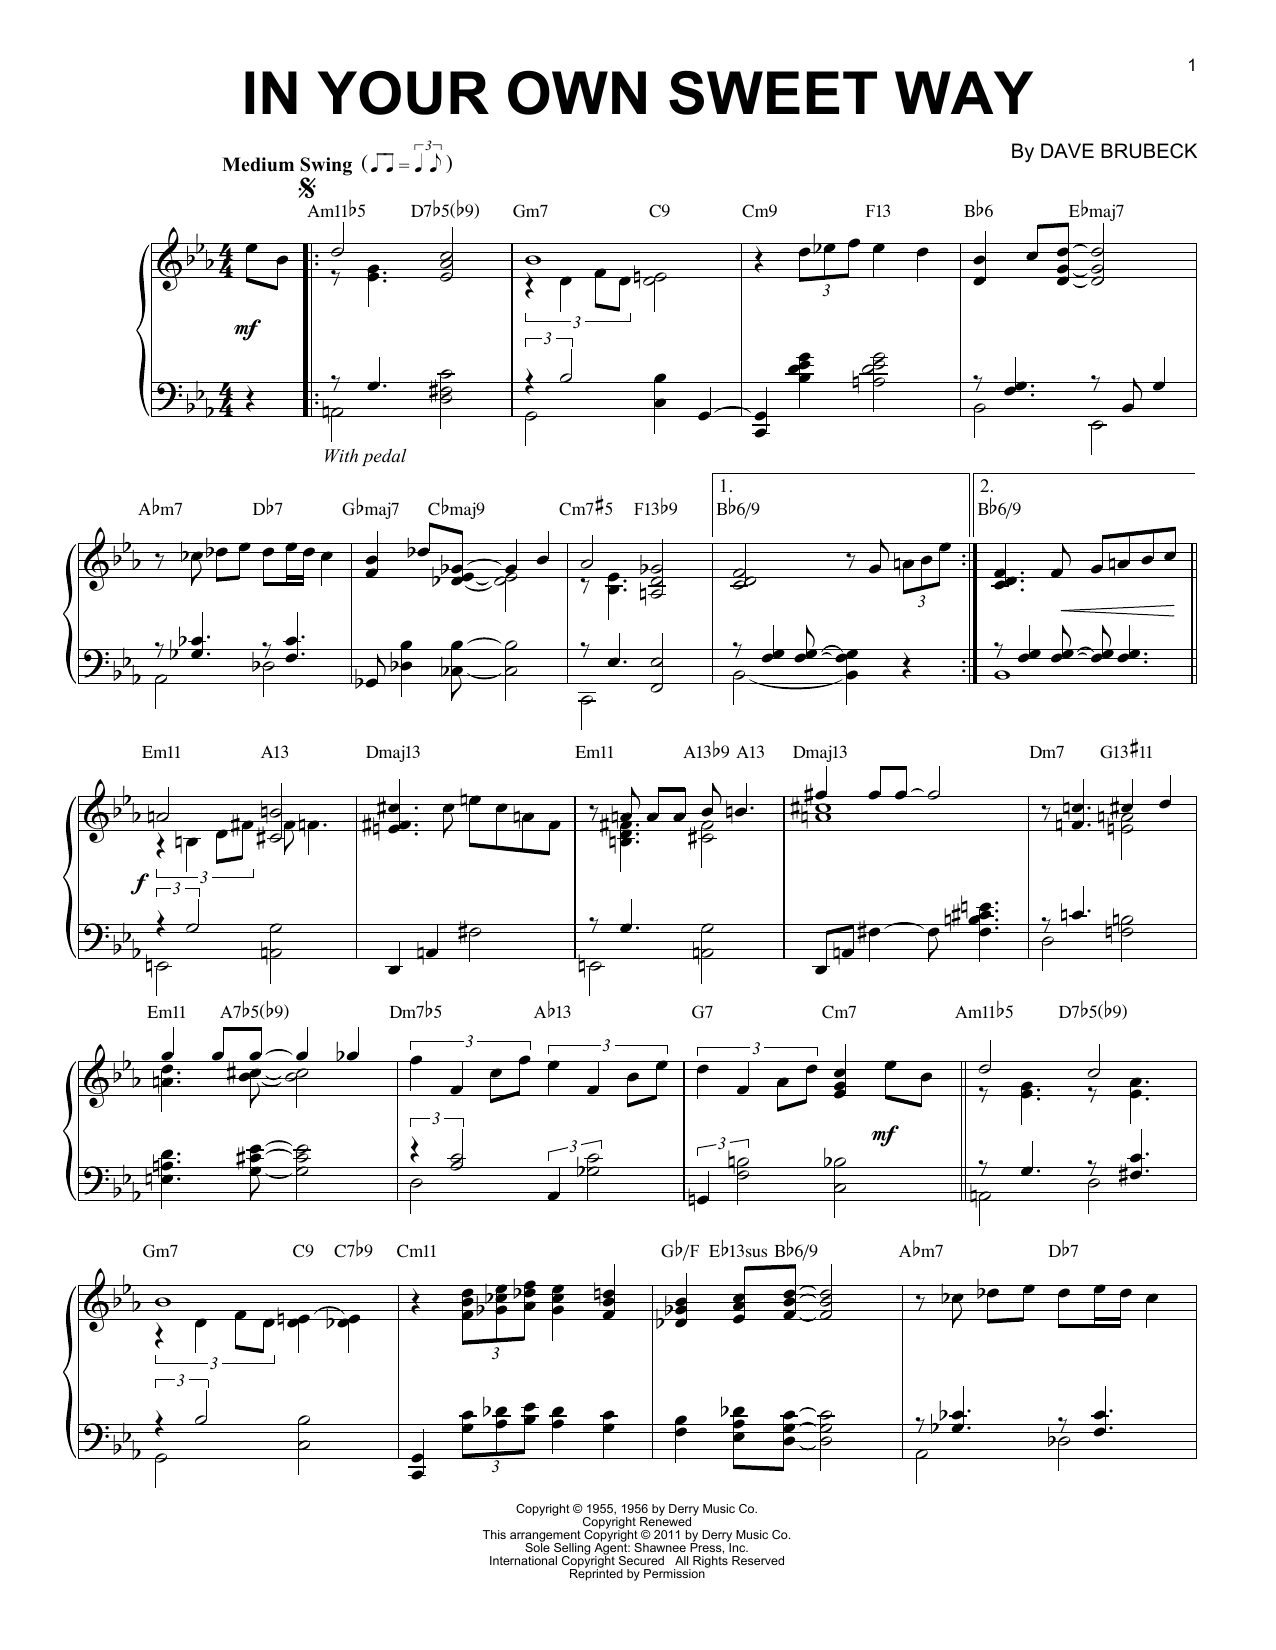 Dave Brubeck In Your Own Sweet Way (arr. Brent Edstrom) sheet music notes and chords. Download Printable PDF.